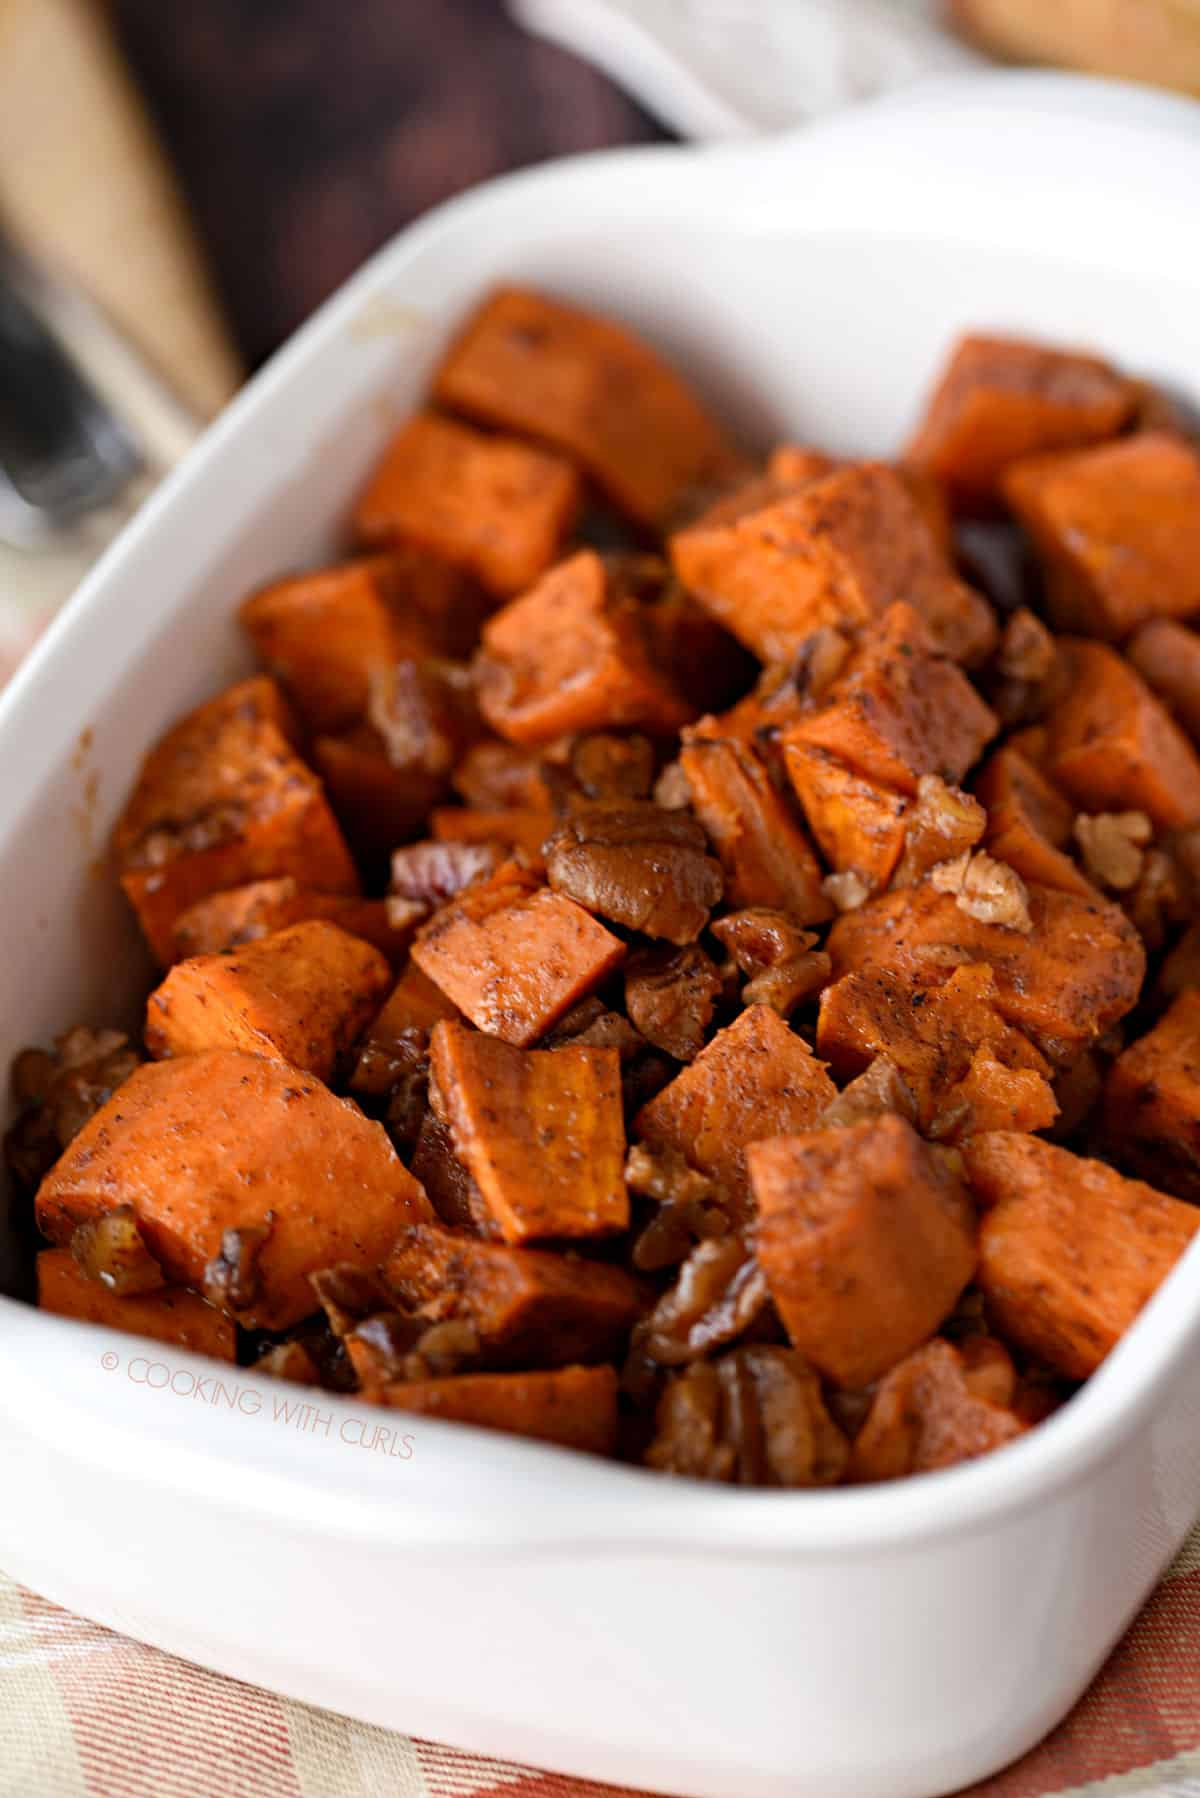 yam cubes, spices and pecans baked in a small white baking dish.